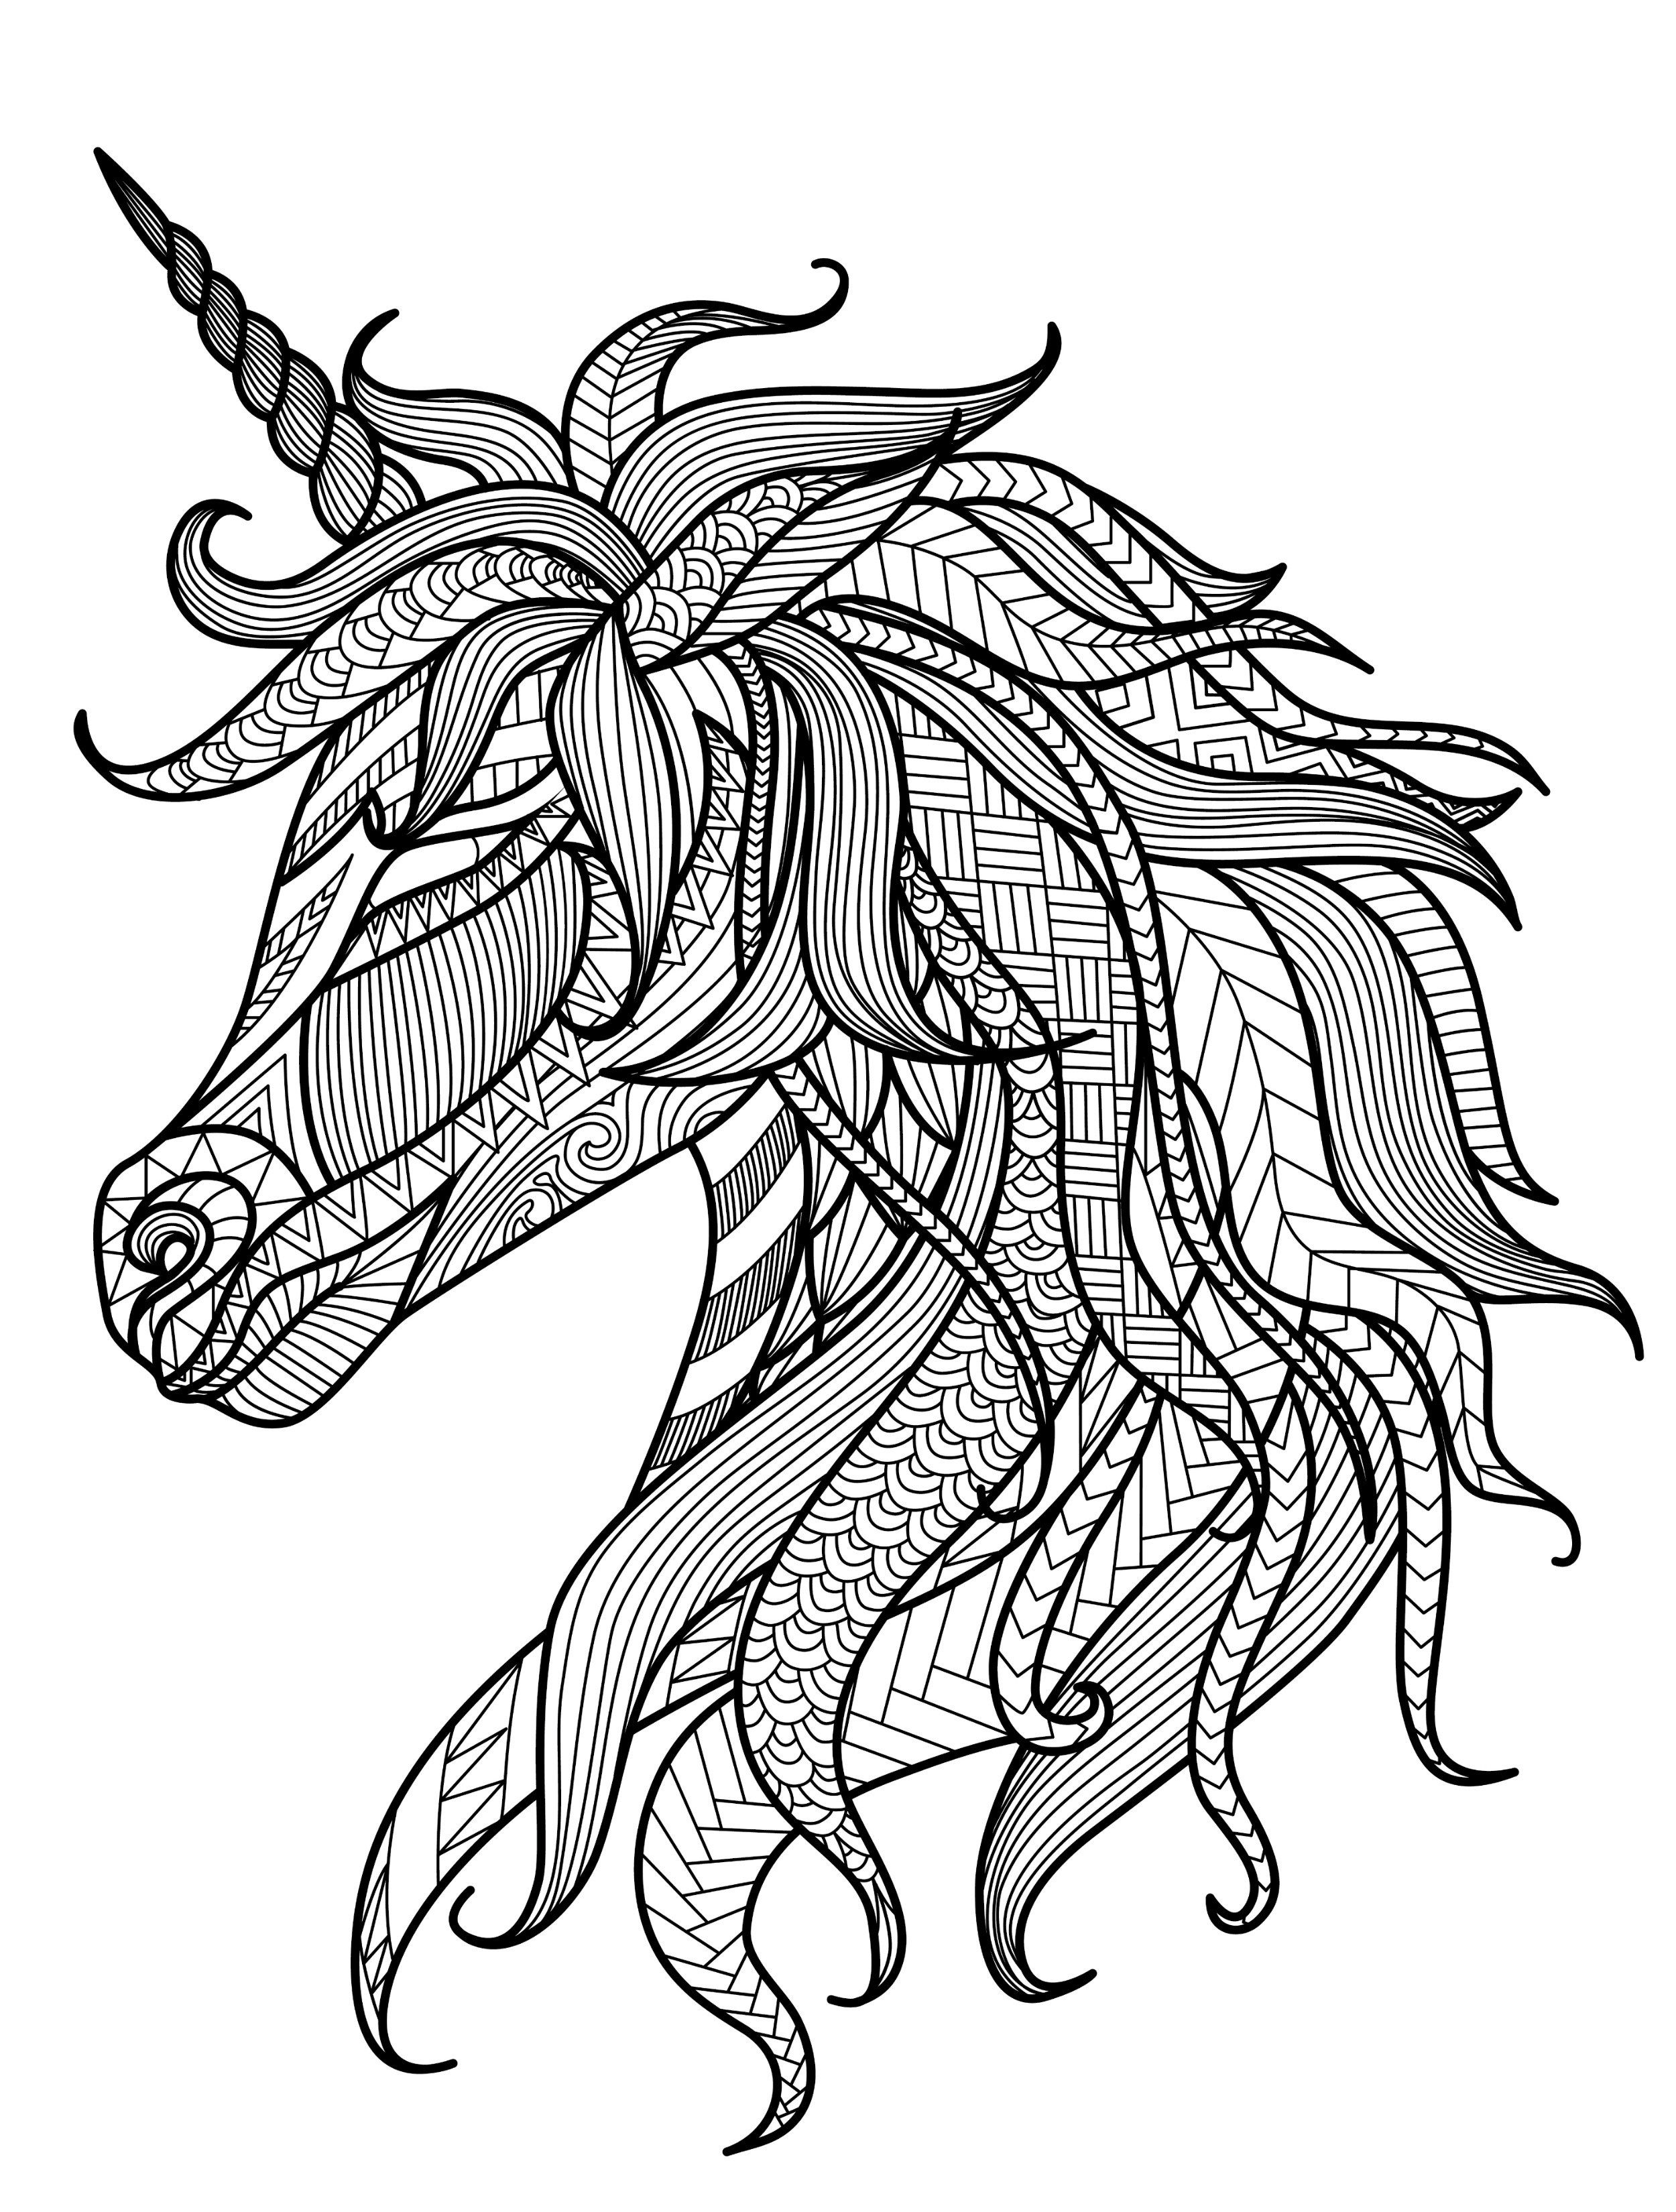 20 Free Printable Adult Coloring Pages Page 5